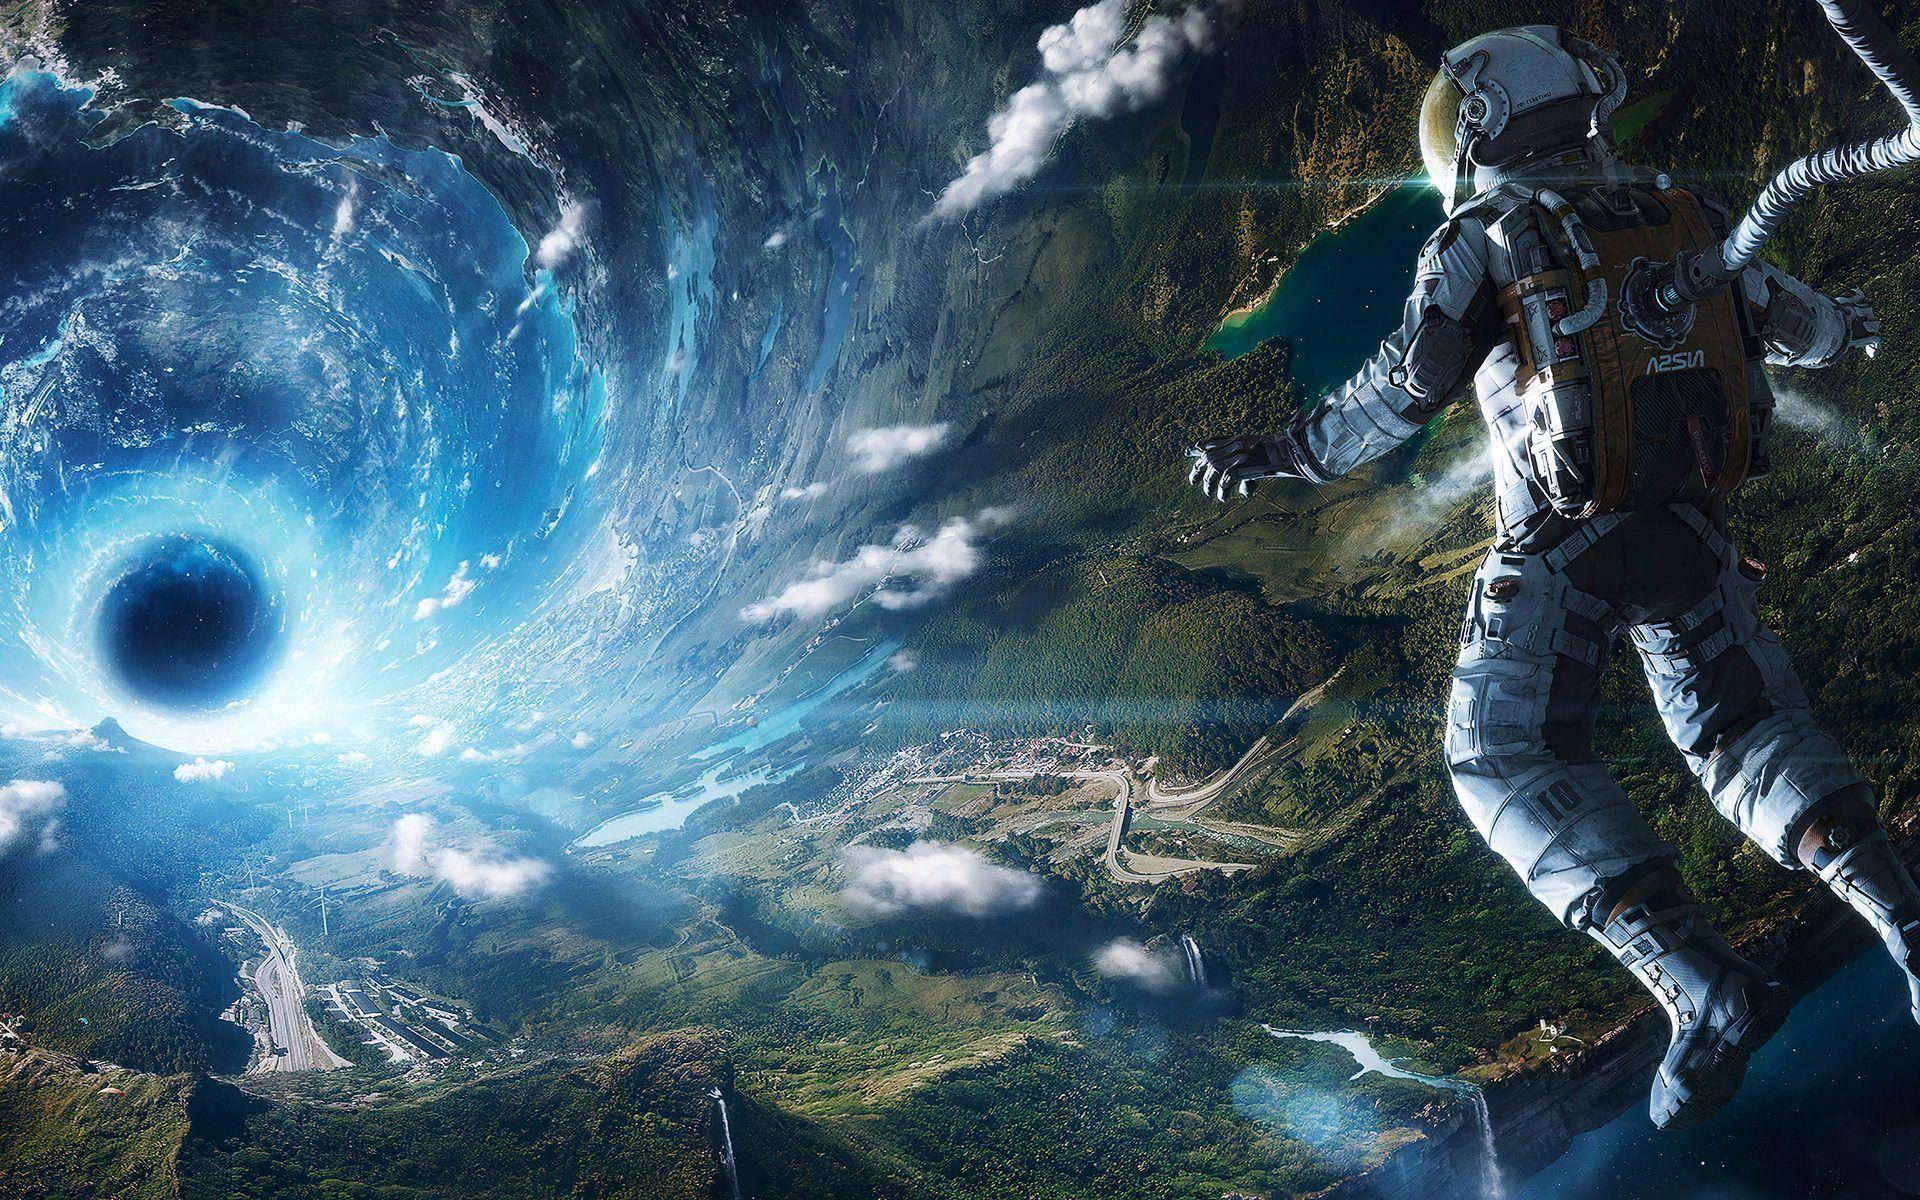 Astronaut In Space Wallpapers Top Free Astronaut In Space Backgrounds Wallpaperaccess